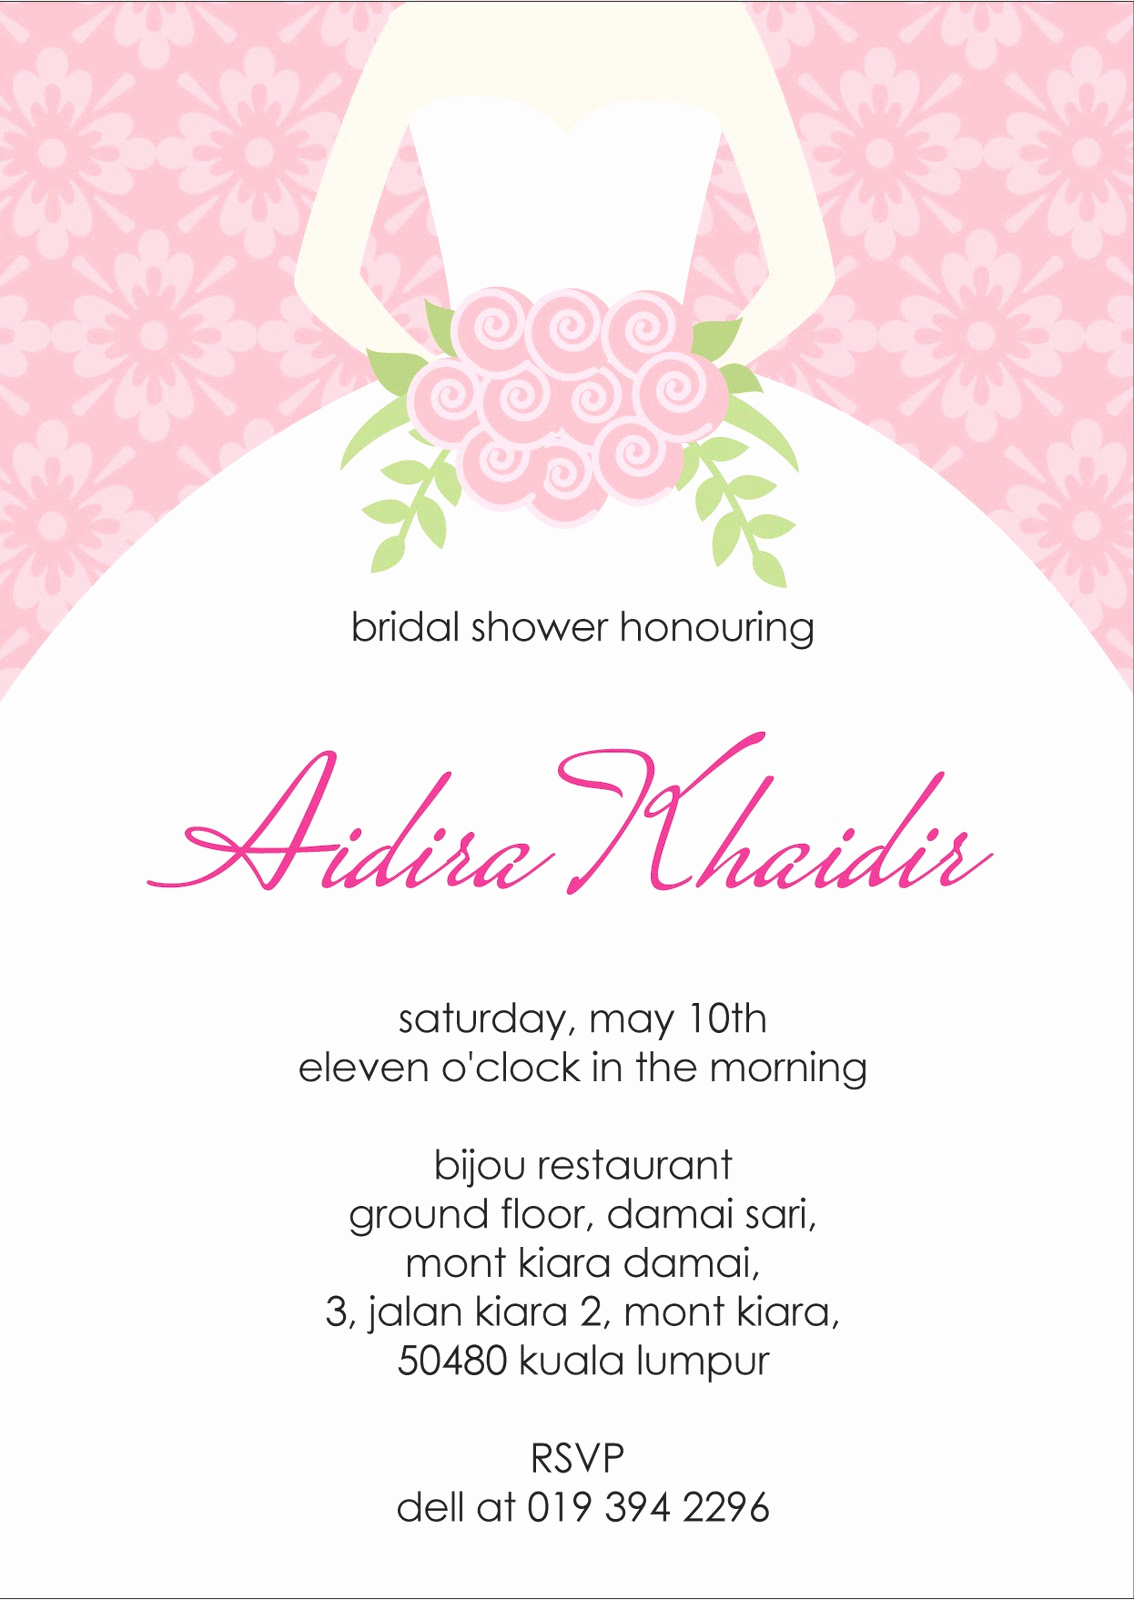 Bridal Shower Invitation Wording Elegant Your One Stop Wedding Centre Ts Deco Favors and